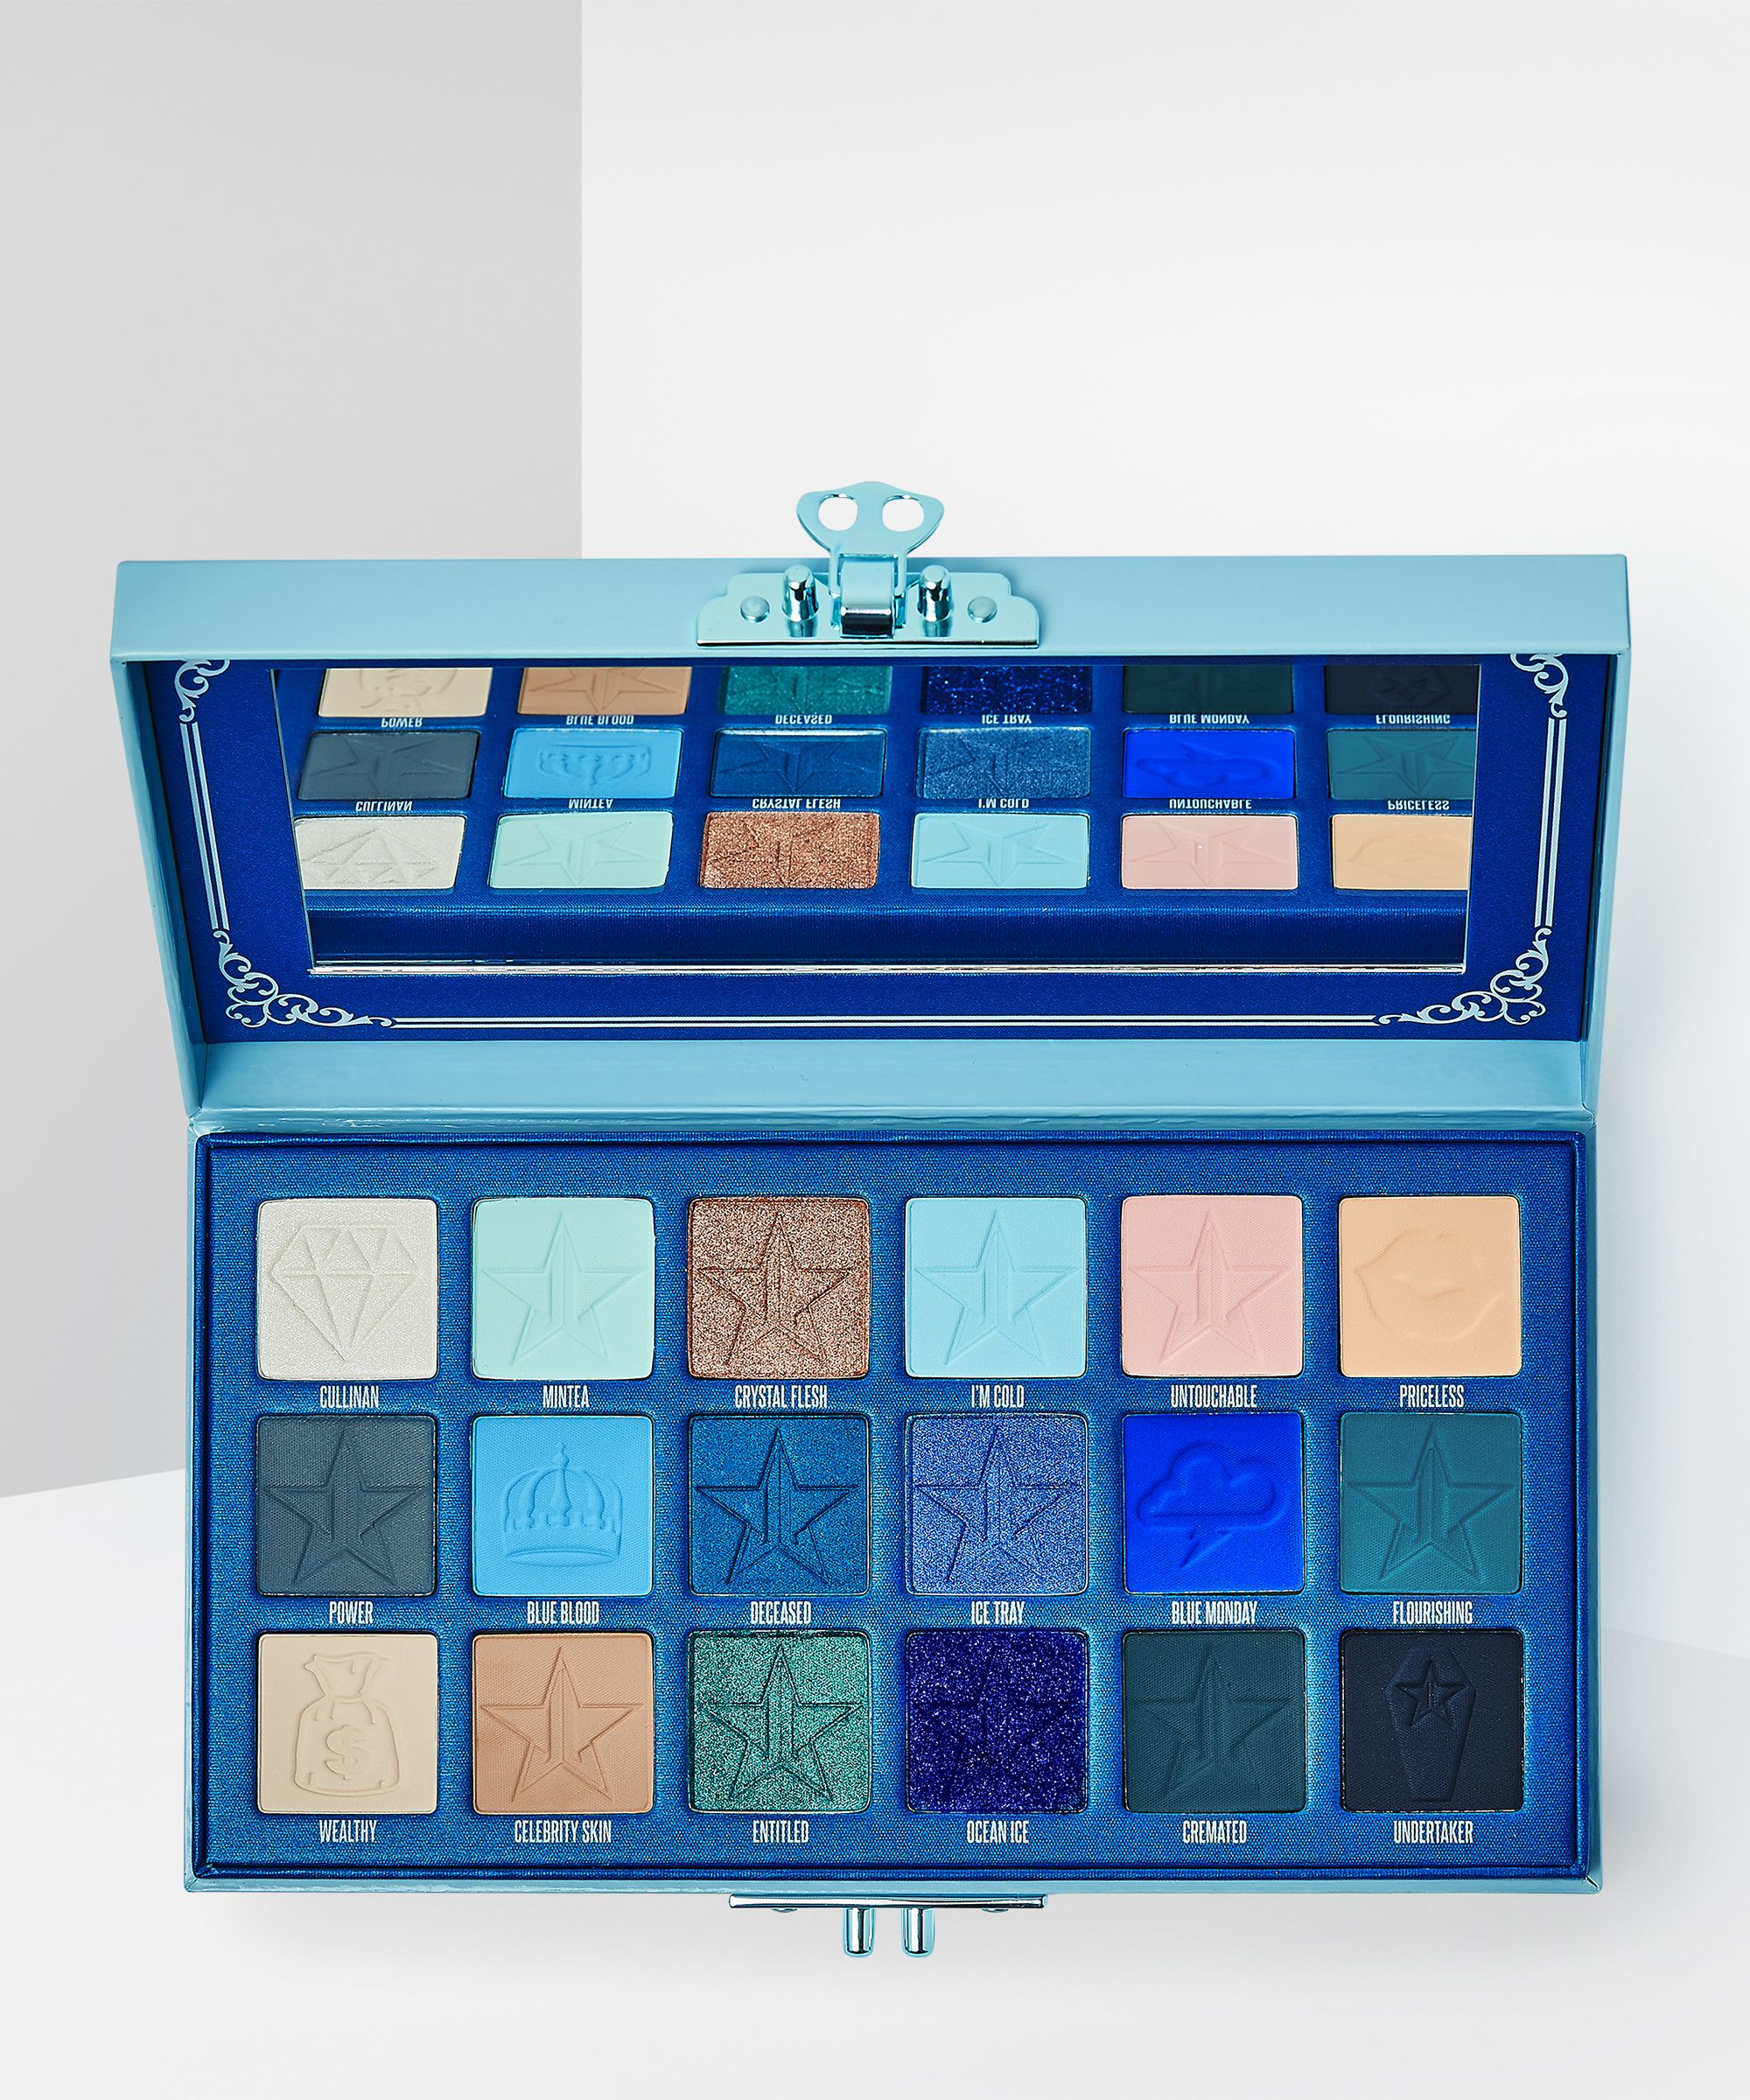 How to save 40% on so many Jeffree Star products right now